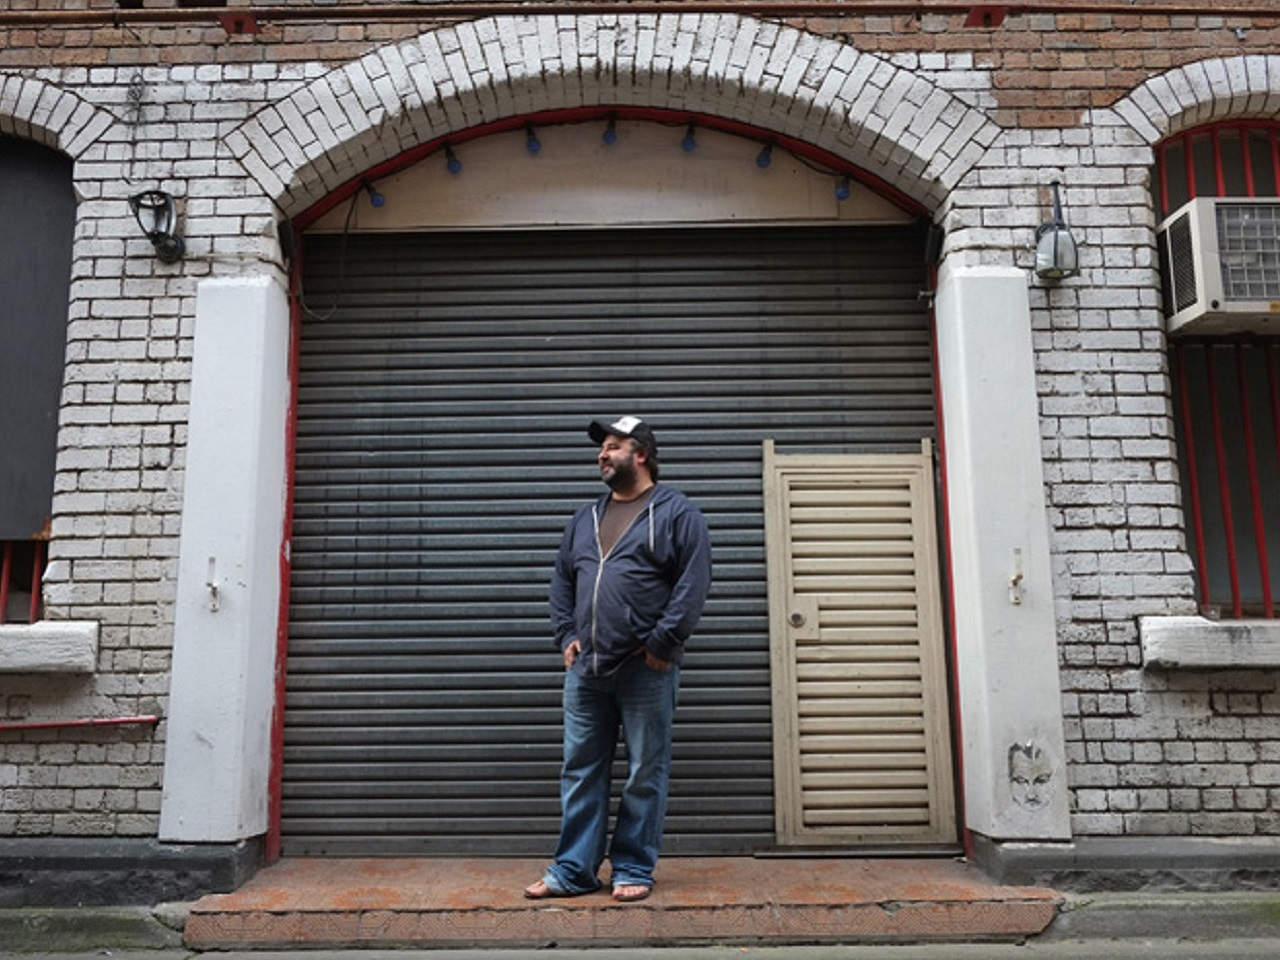 A LANEWAY TOUR WITH ST JEROME